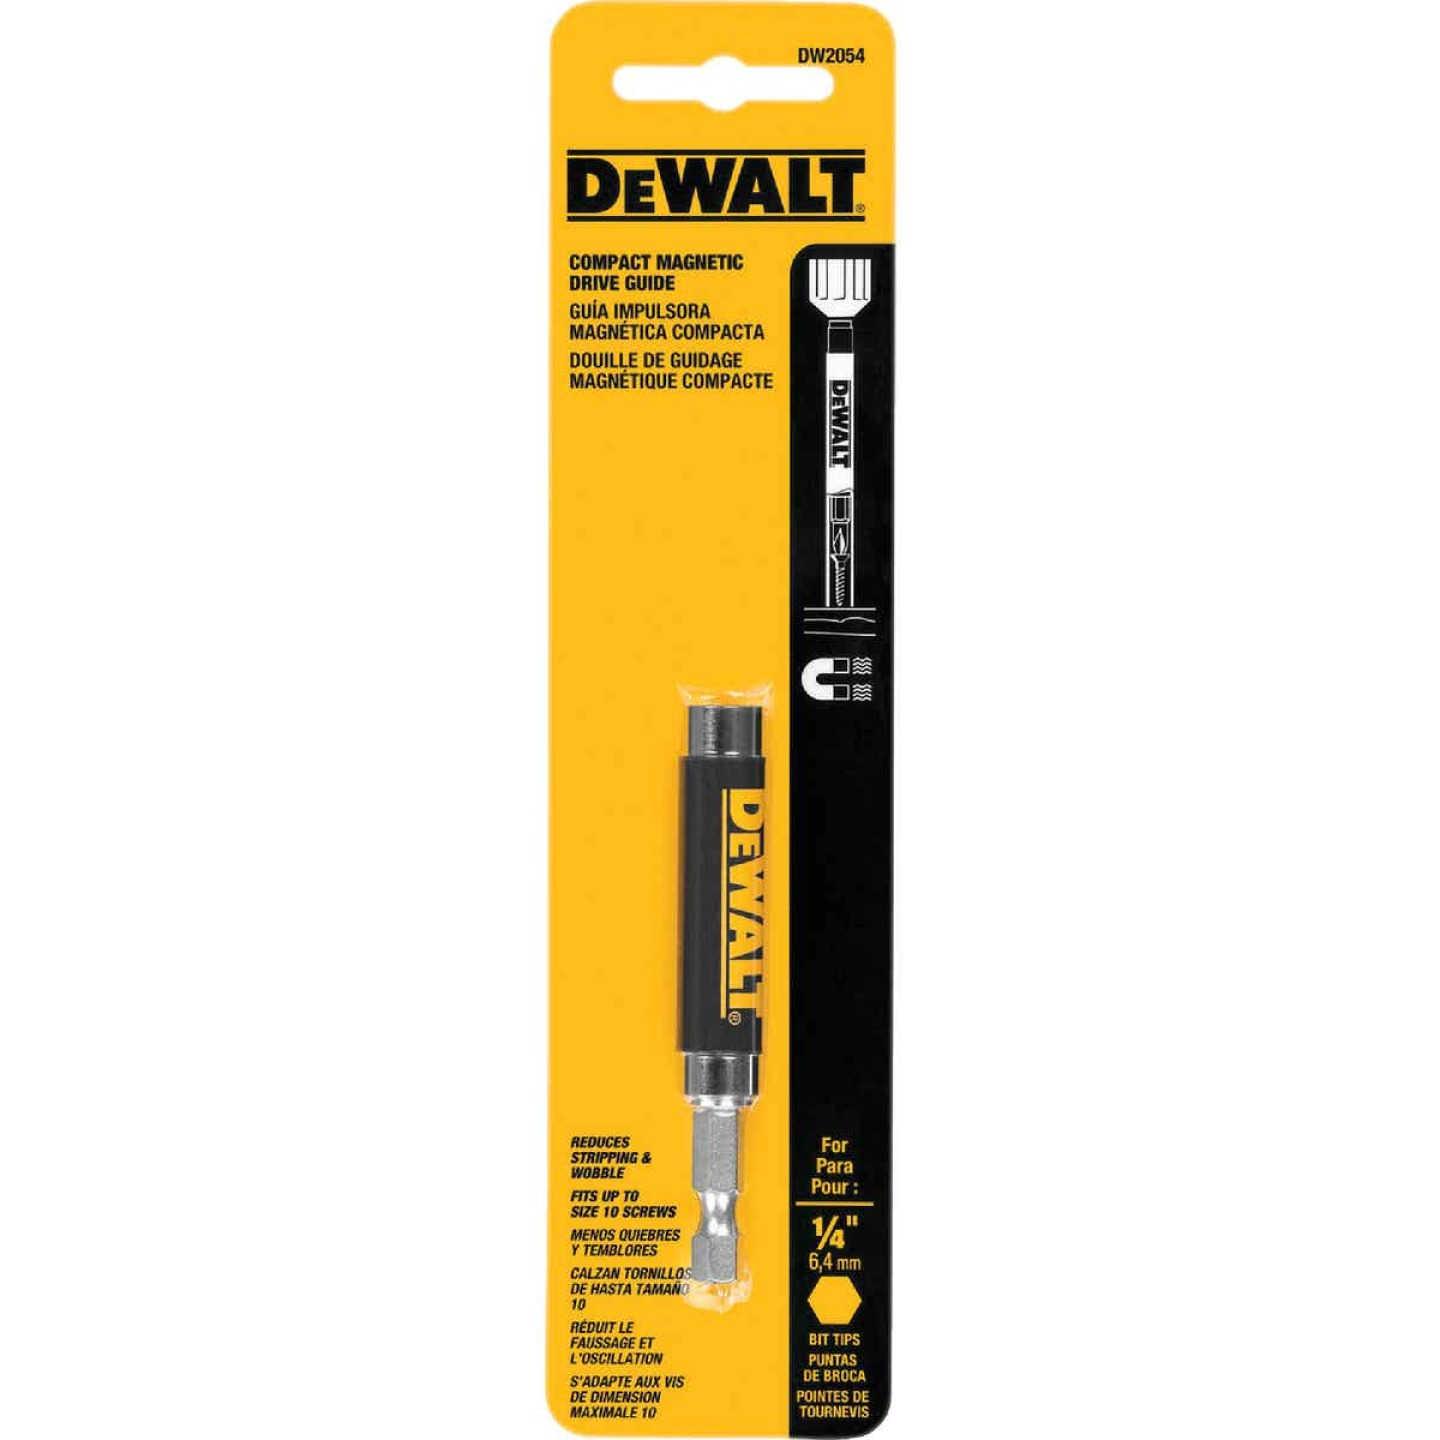 DeWalt 1/4 In. Hex x 3 In. Magnetic Bit Holder Image 3